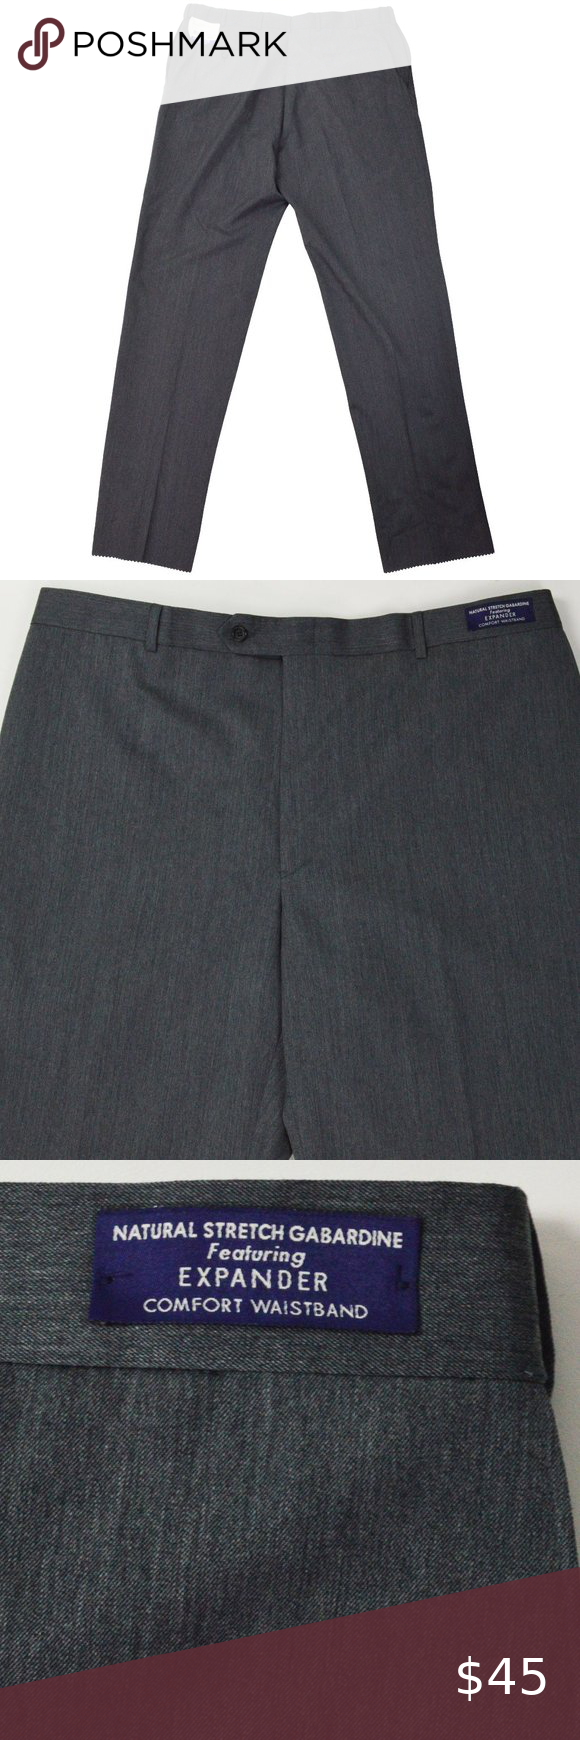 Sold Austin Reed Mens Pants Size 40 Grey In 2020 Mens Wool Trousers Mens Pants Mens Pants Sizes